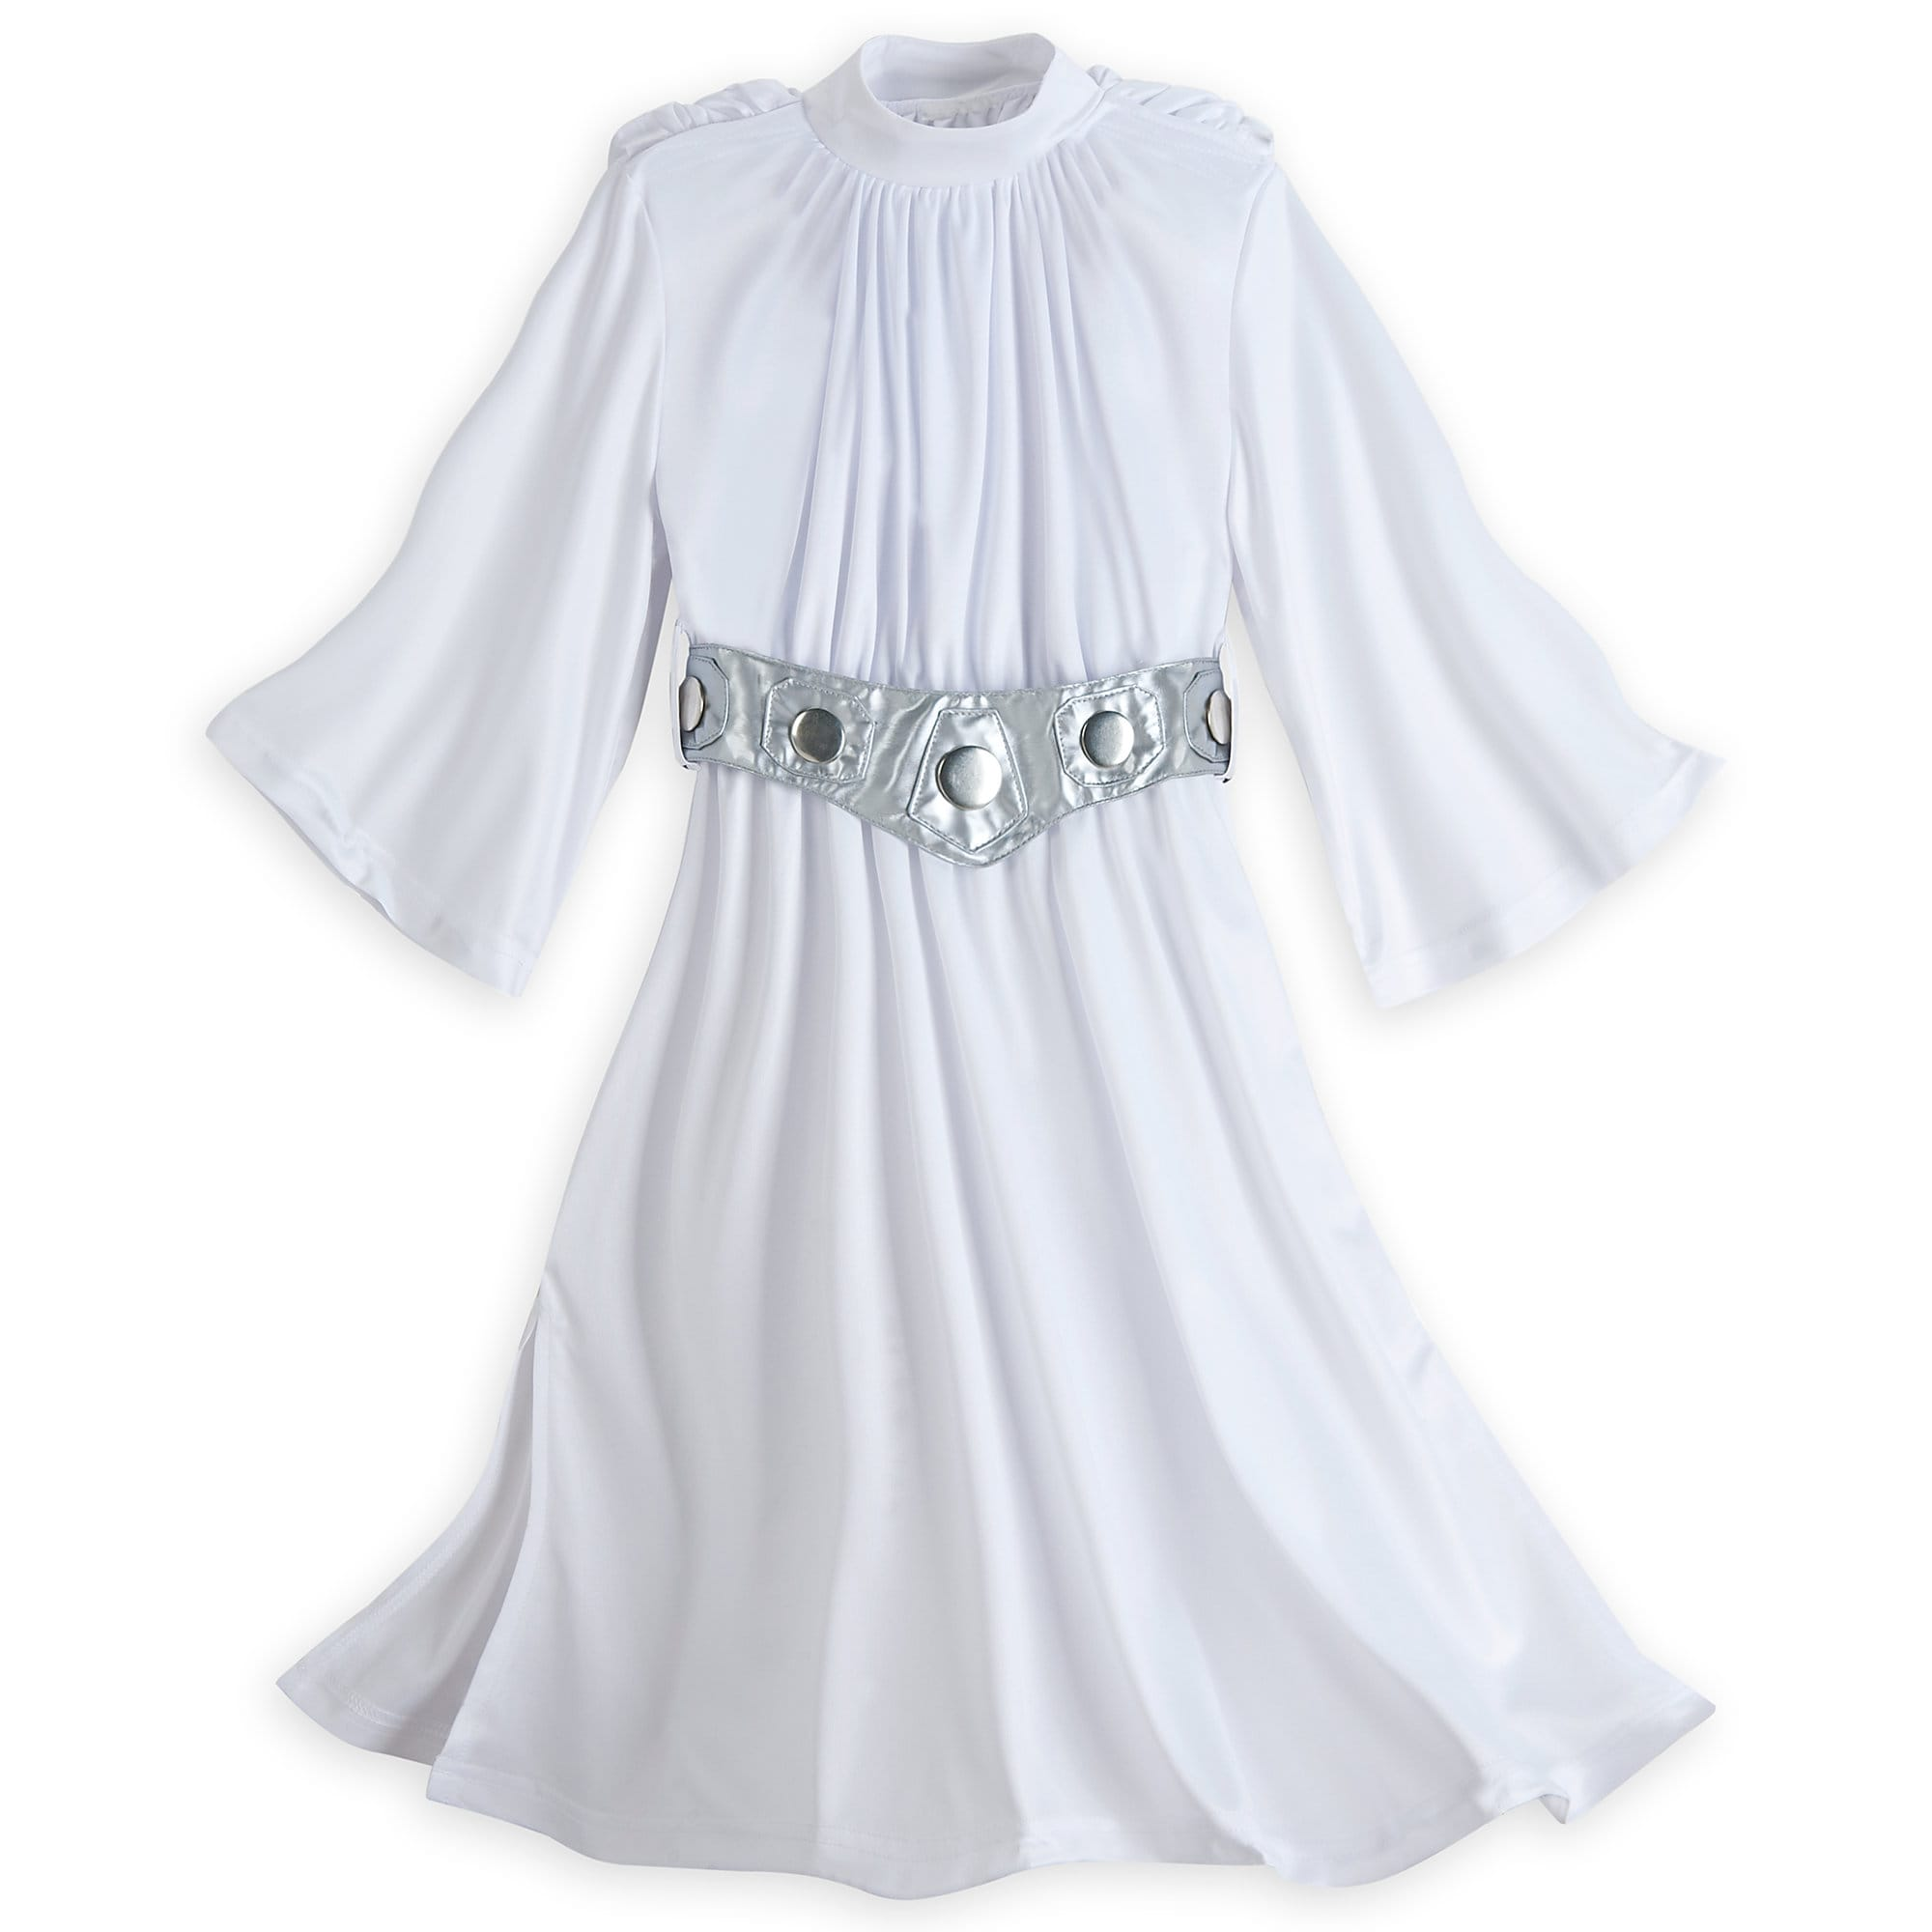 Thumbnail Image of Princess Leia Costume for Kids - Star Wars # 3  sc 1 st  shopDisney : child leia costume - Germanpascual.Com